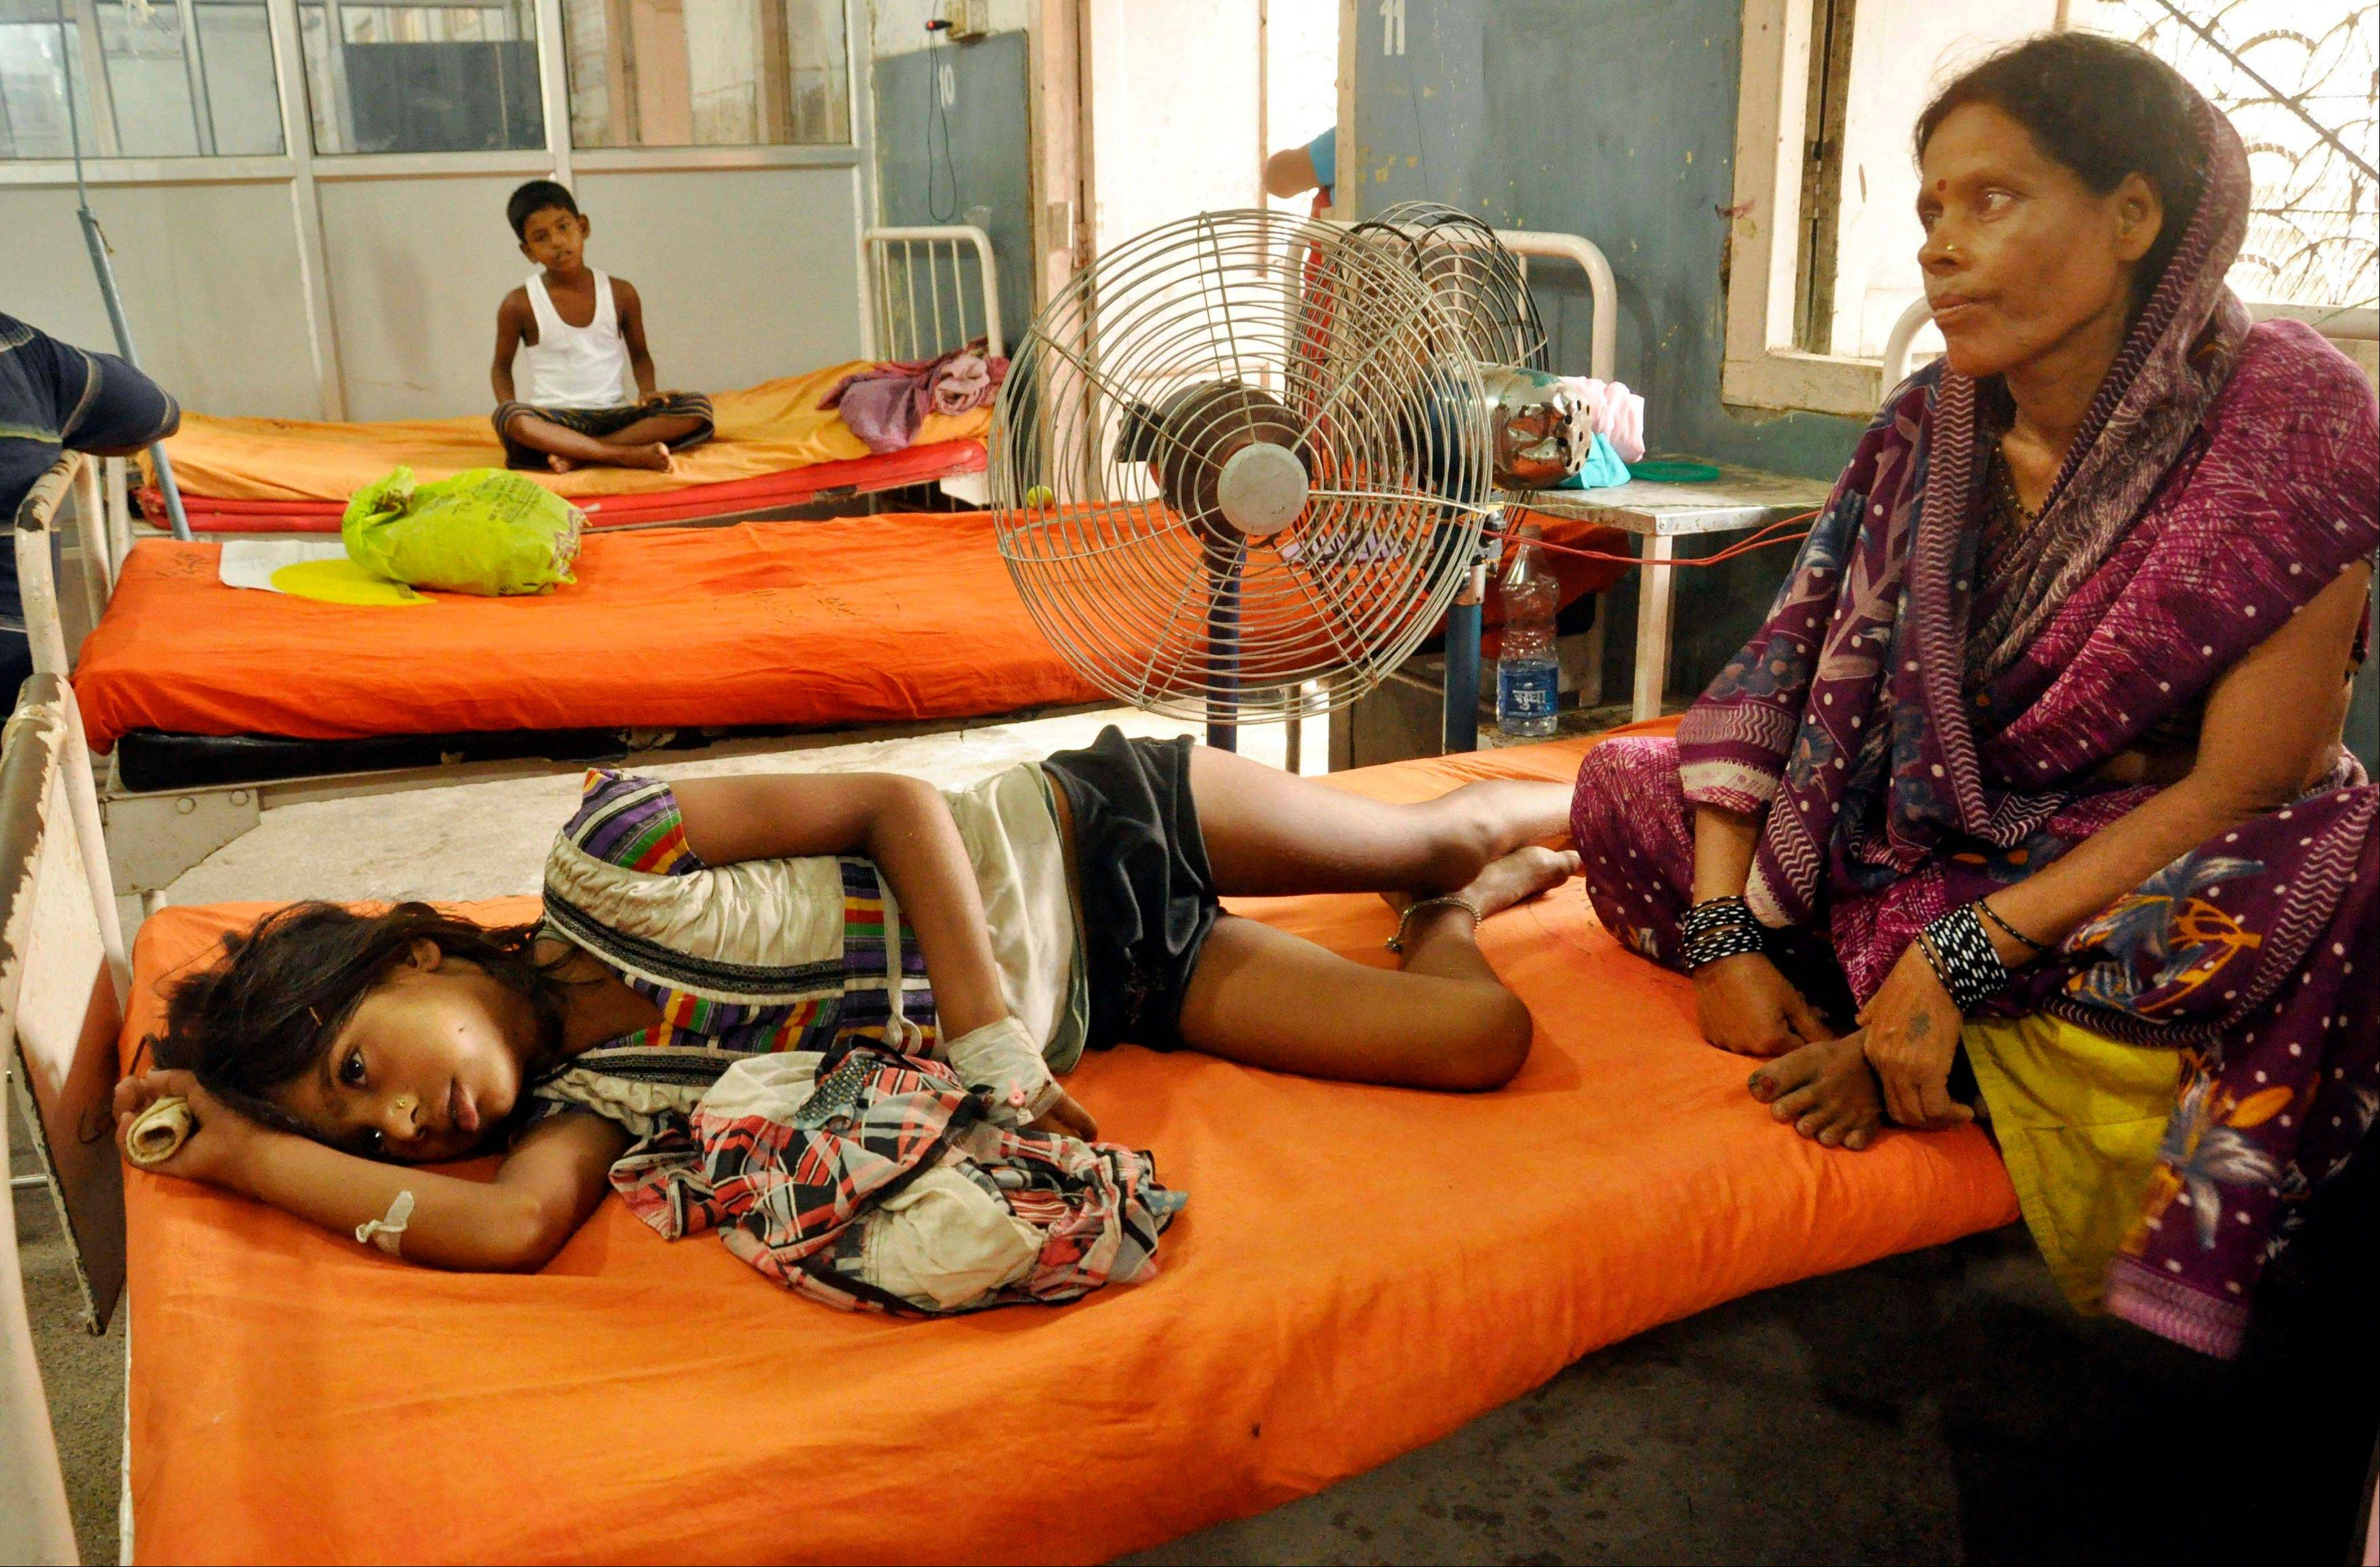 An Indian woman sits beside a child who fell sick after eating a free school lunch, at a hospital in Patna, India, Thursday, July 18, 2013. Indian officials say at least 23 children have died after eating a free school lunch that was tainted with insecticide. India�s midday meal scheme is one of the world�s biggest school nutrition programs, covering some 120 million schoolchildren.